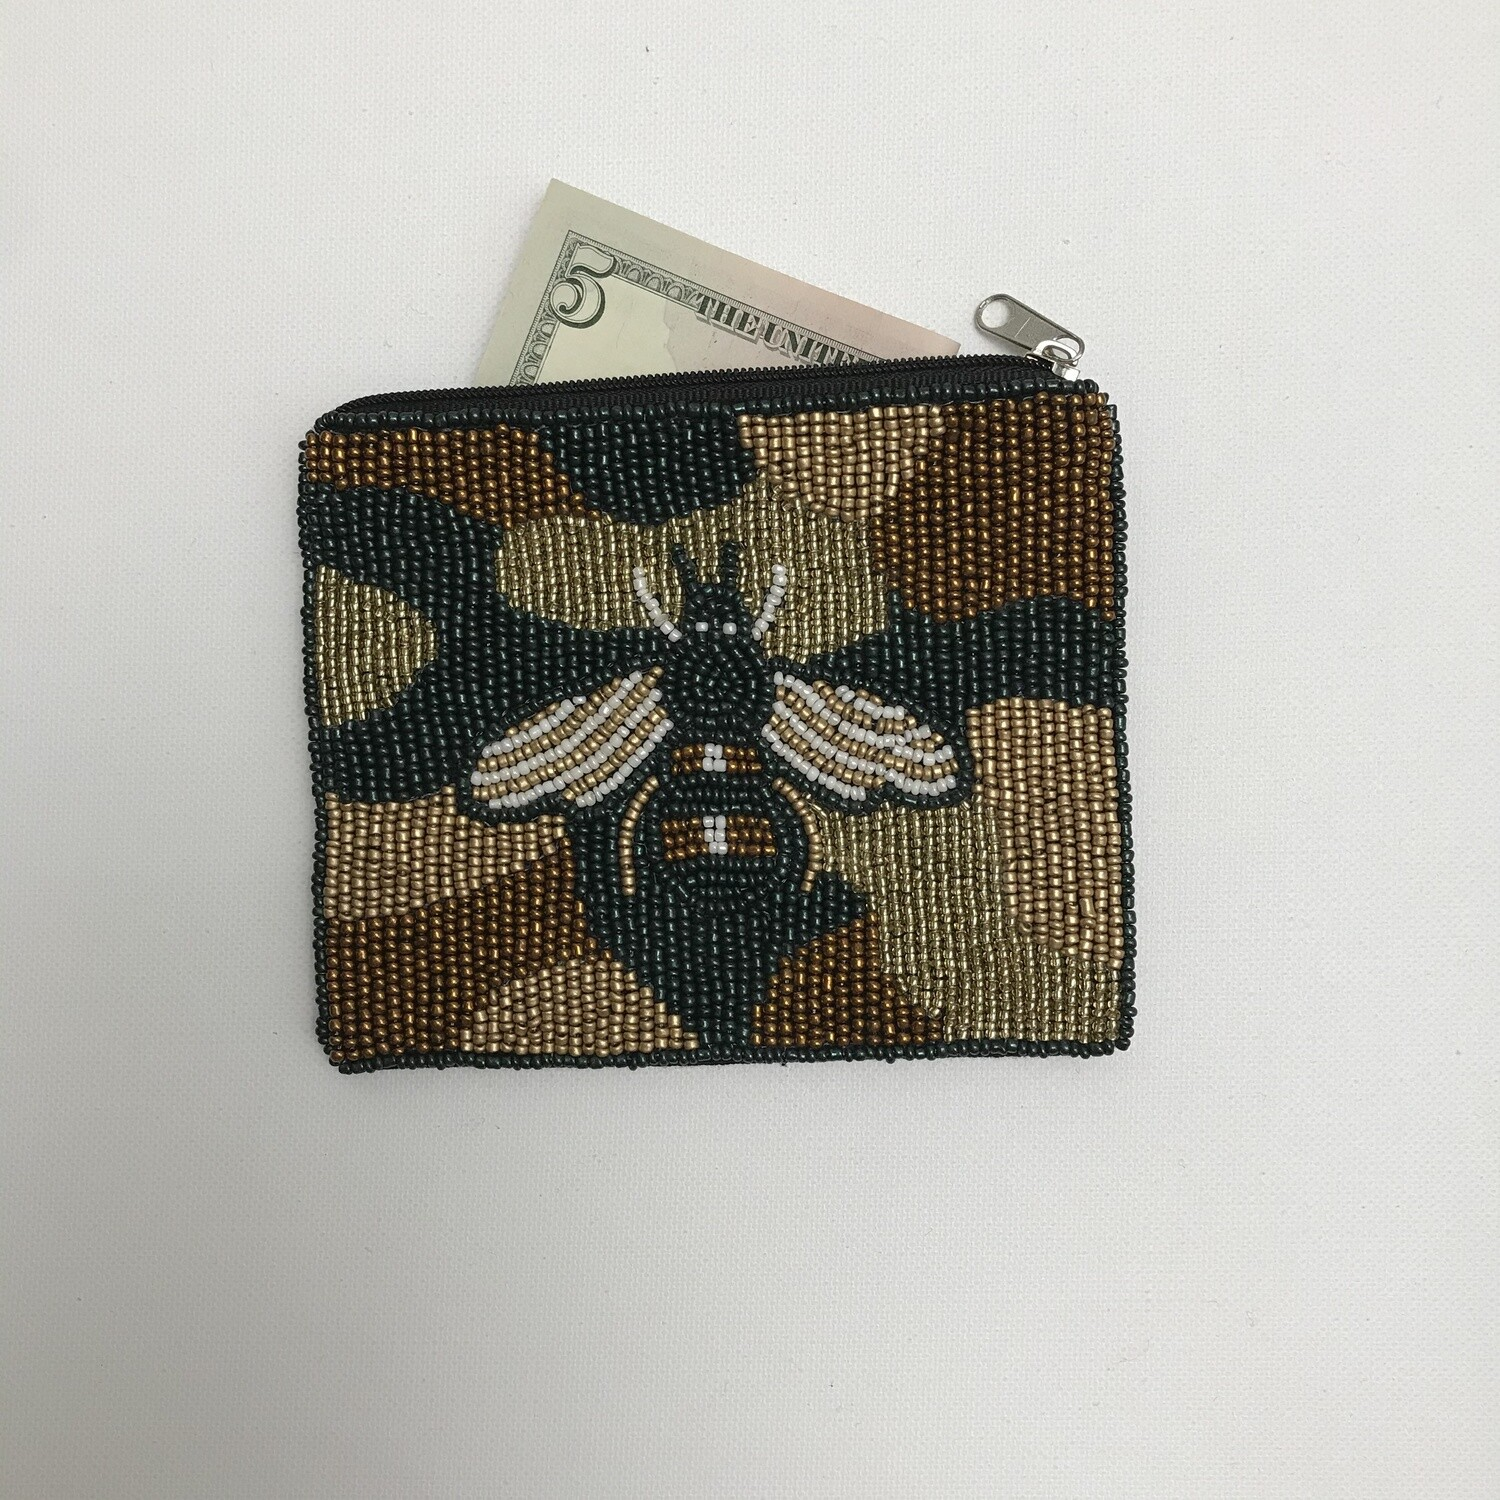 Beaded Coin Purse - Camo/Bee